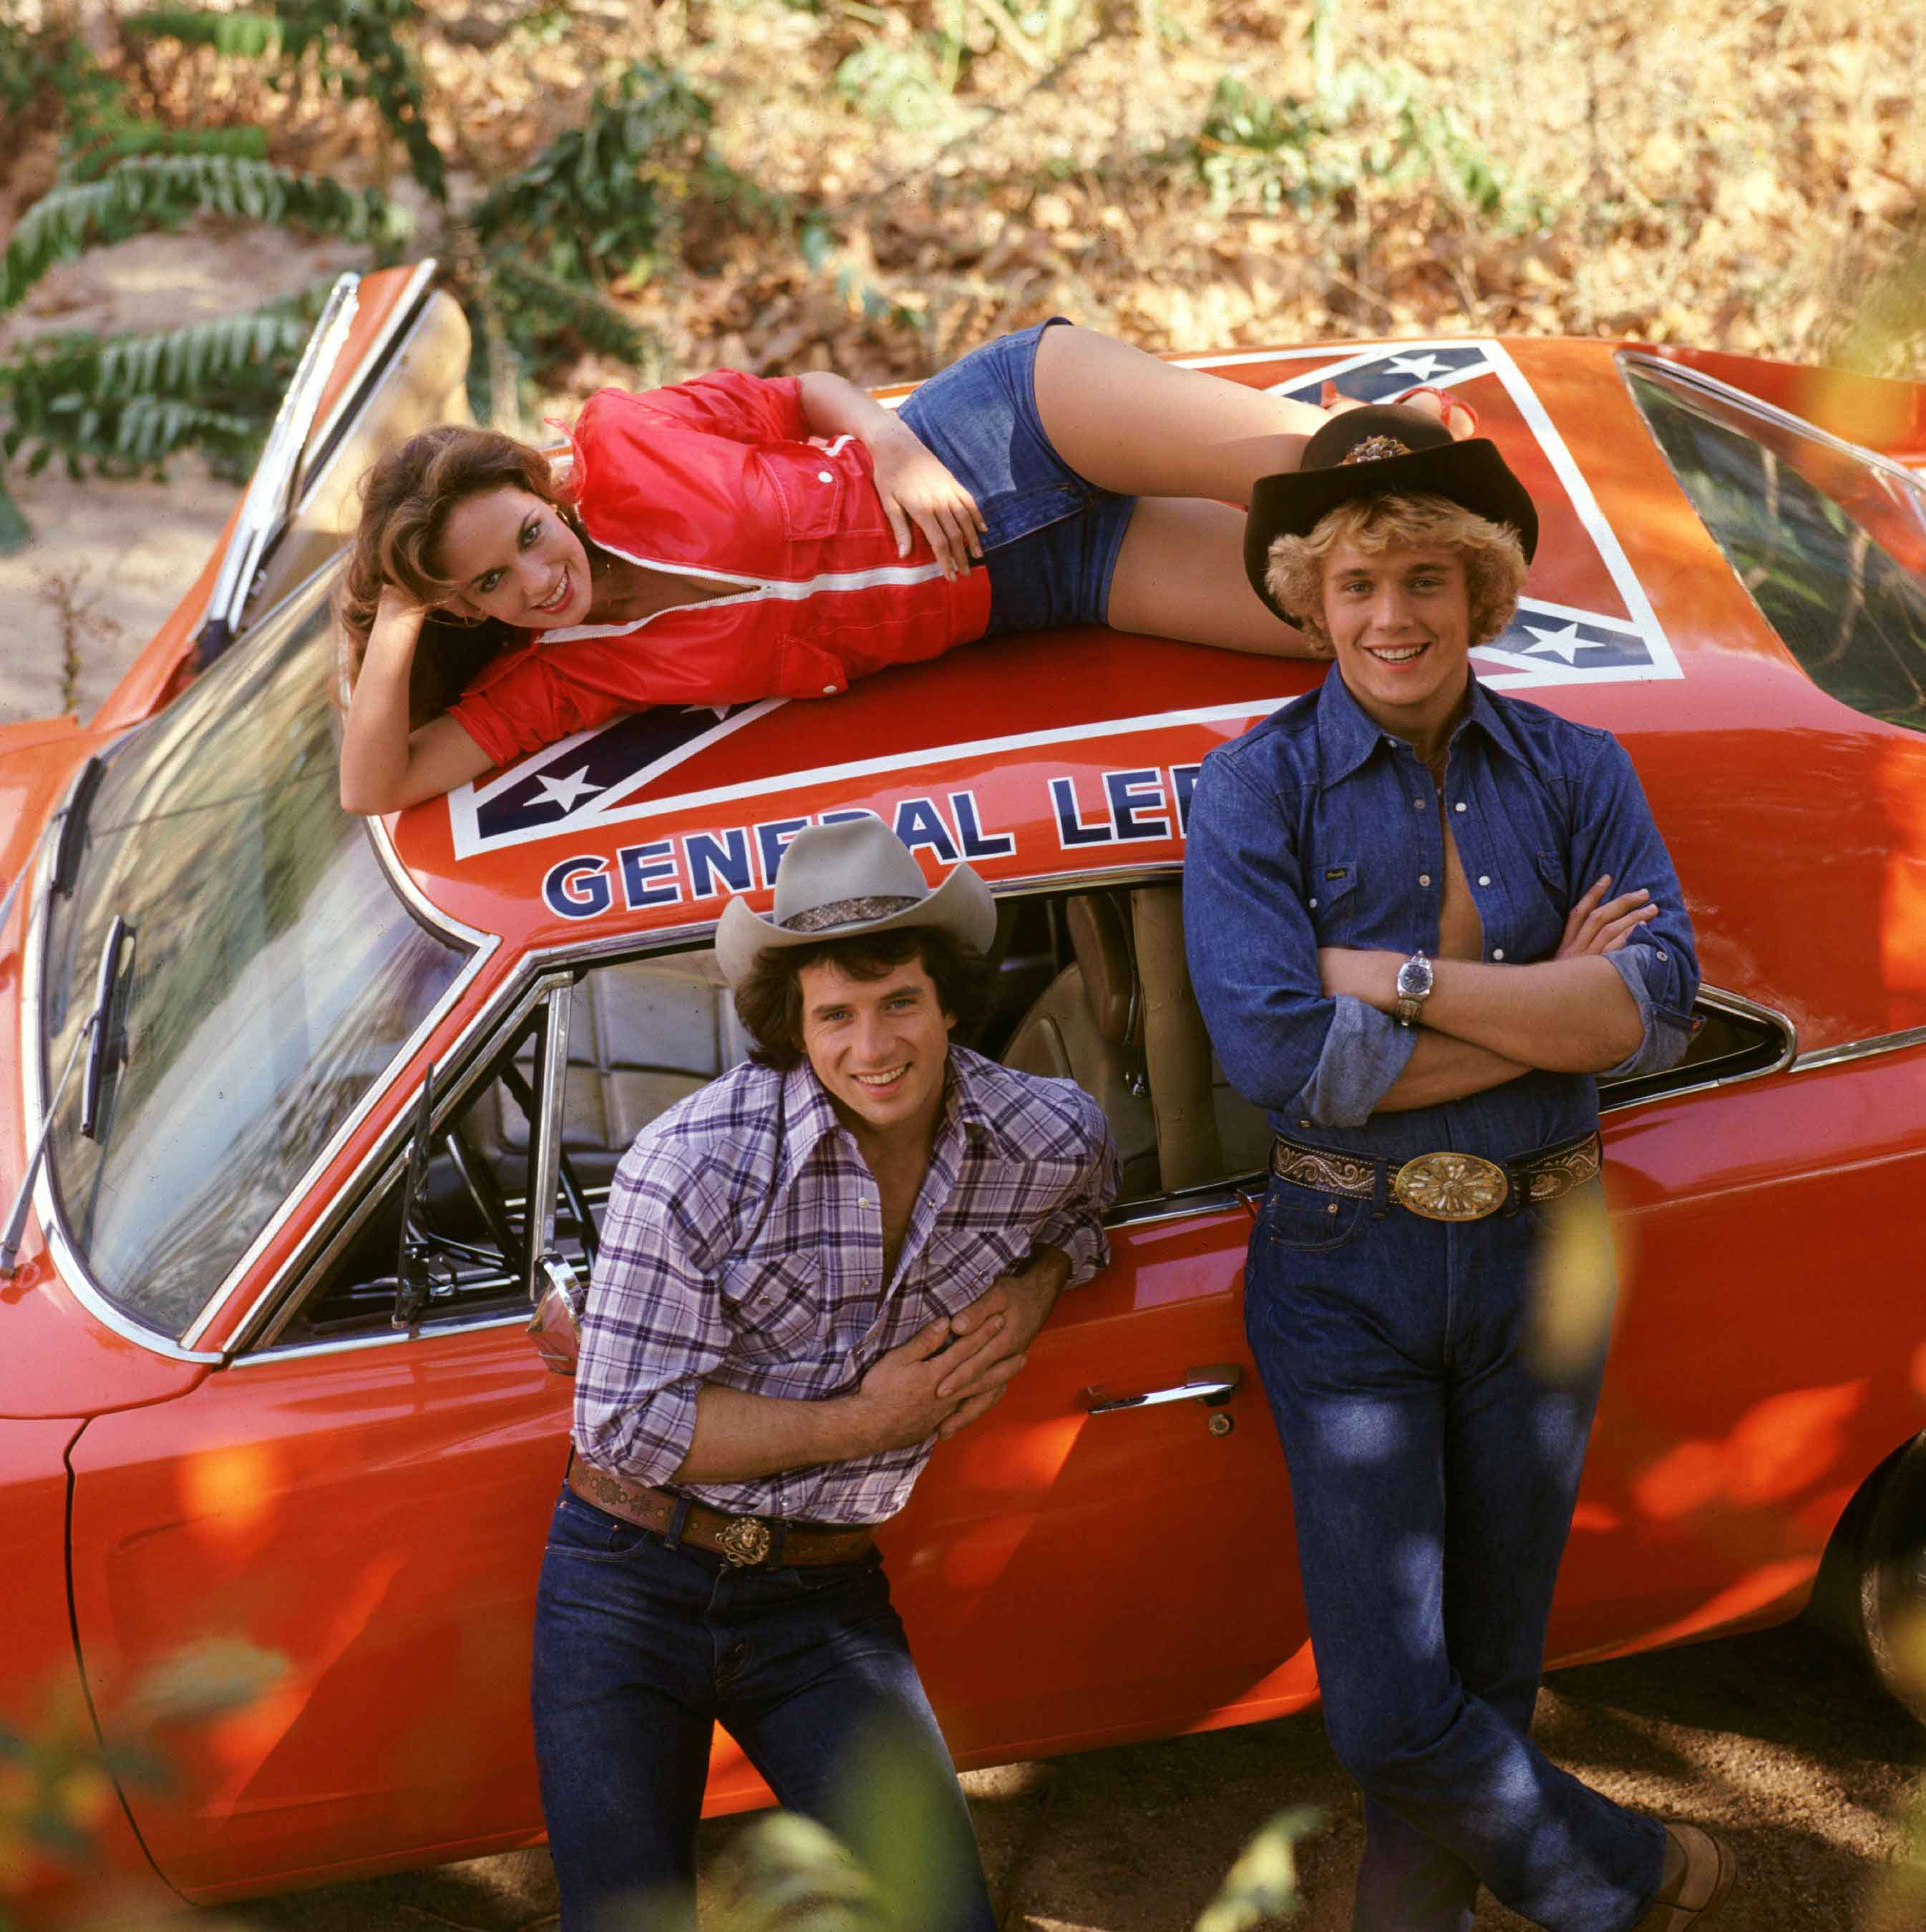 FURY AS DUKES OF HAZZARD REMAKE TO BE HETEROSEXUAL